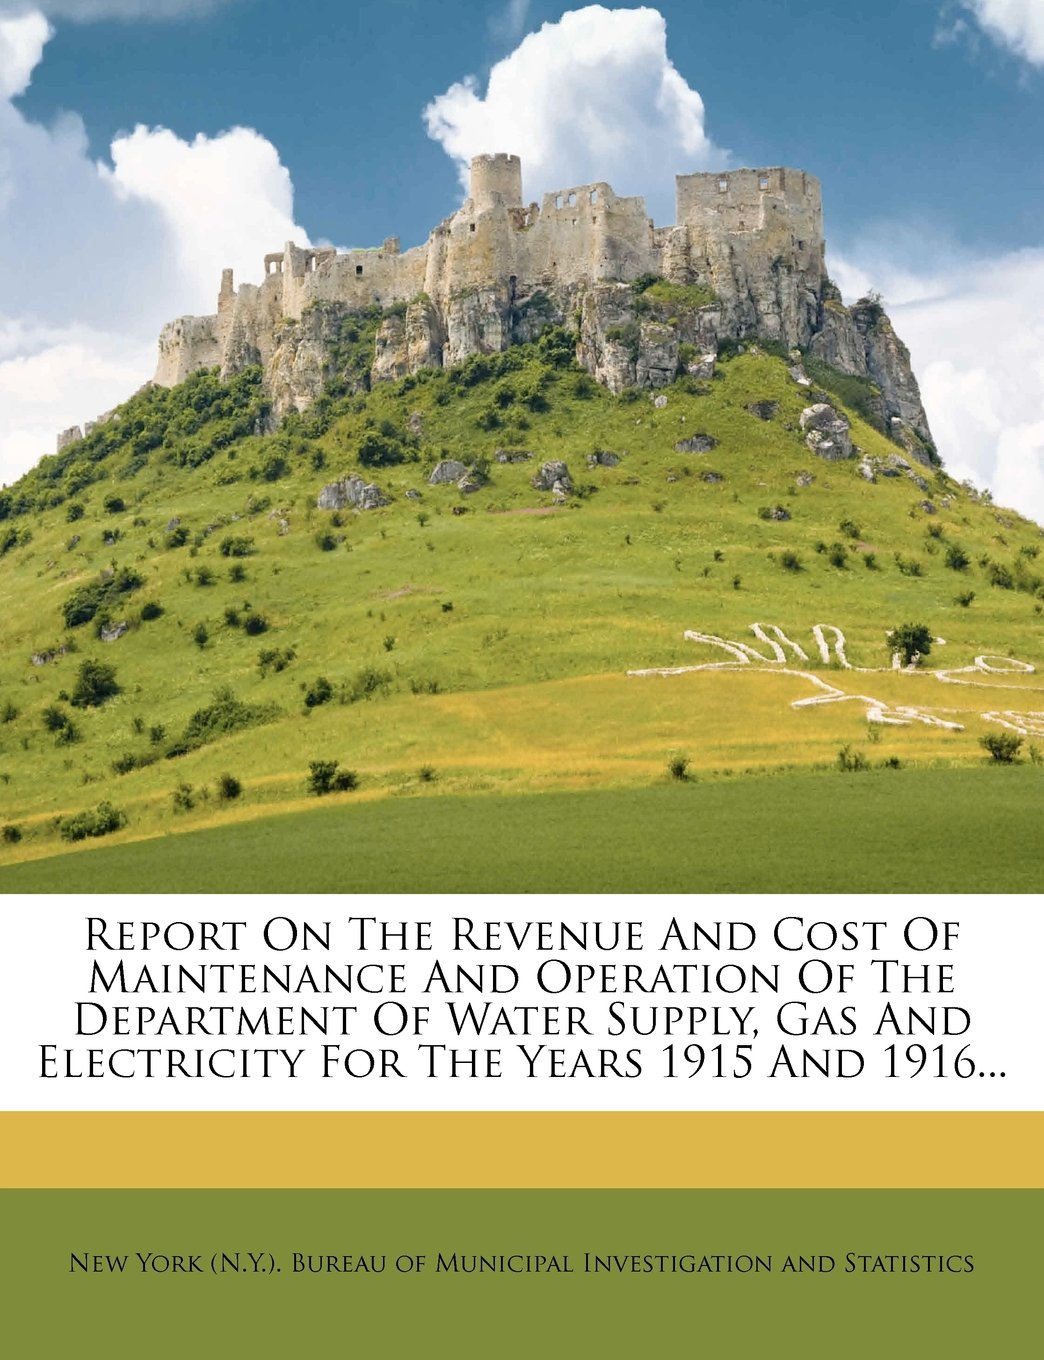 Download Report On The Revenue And Cost Of Maintenance And Operation Of The Department Of Water Supply, Gas And Electricity For The Years 1915 And 1916... pdf